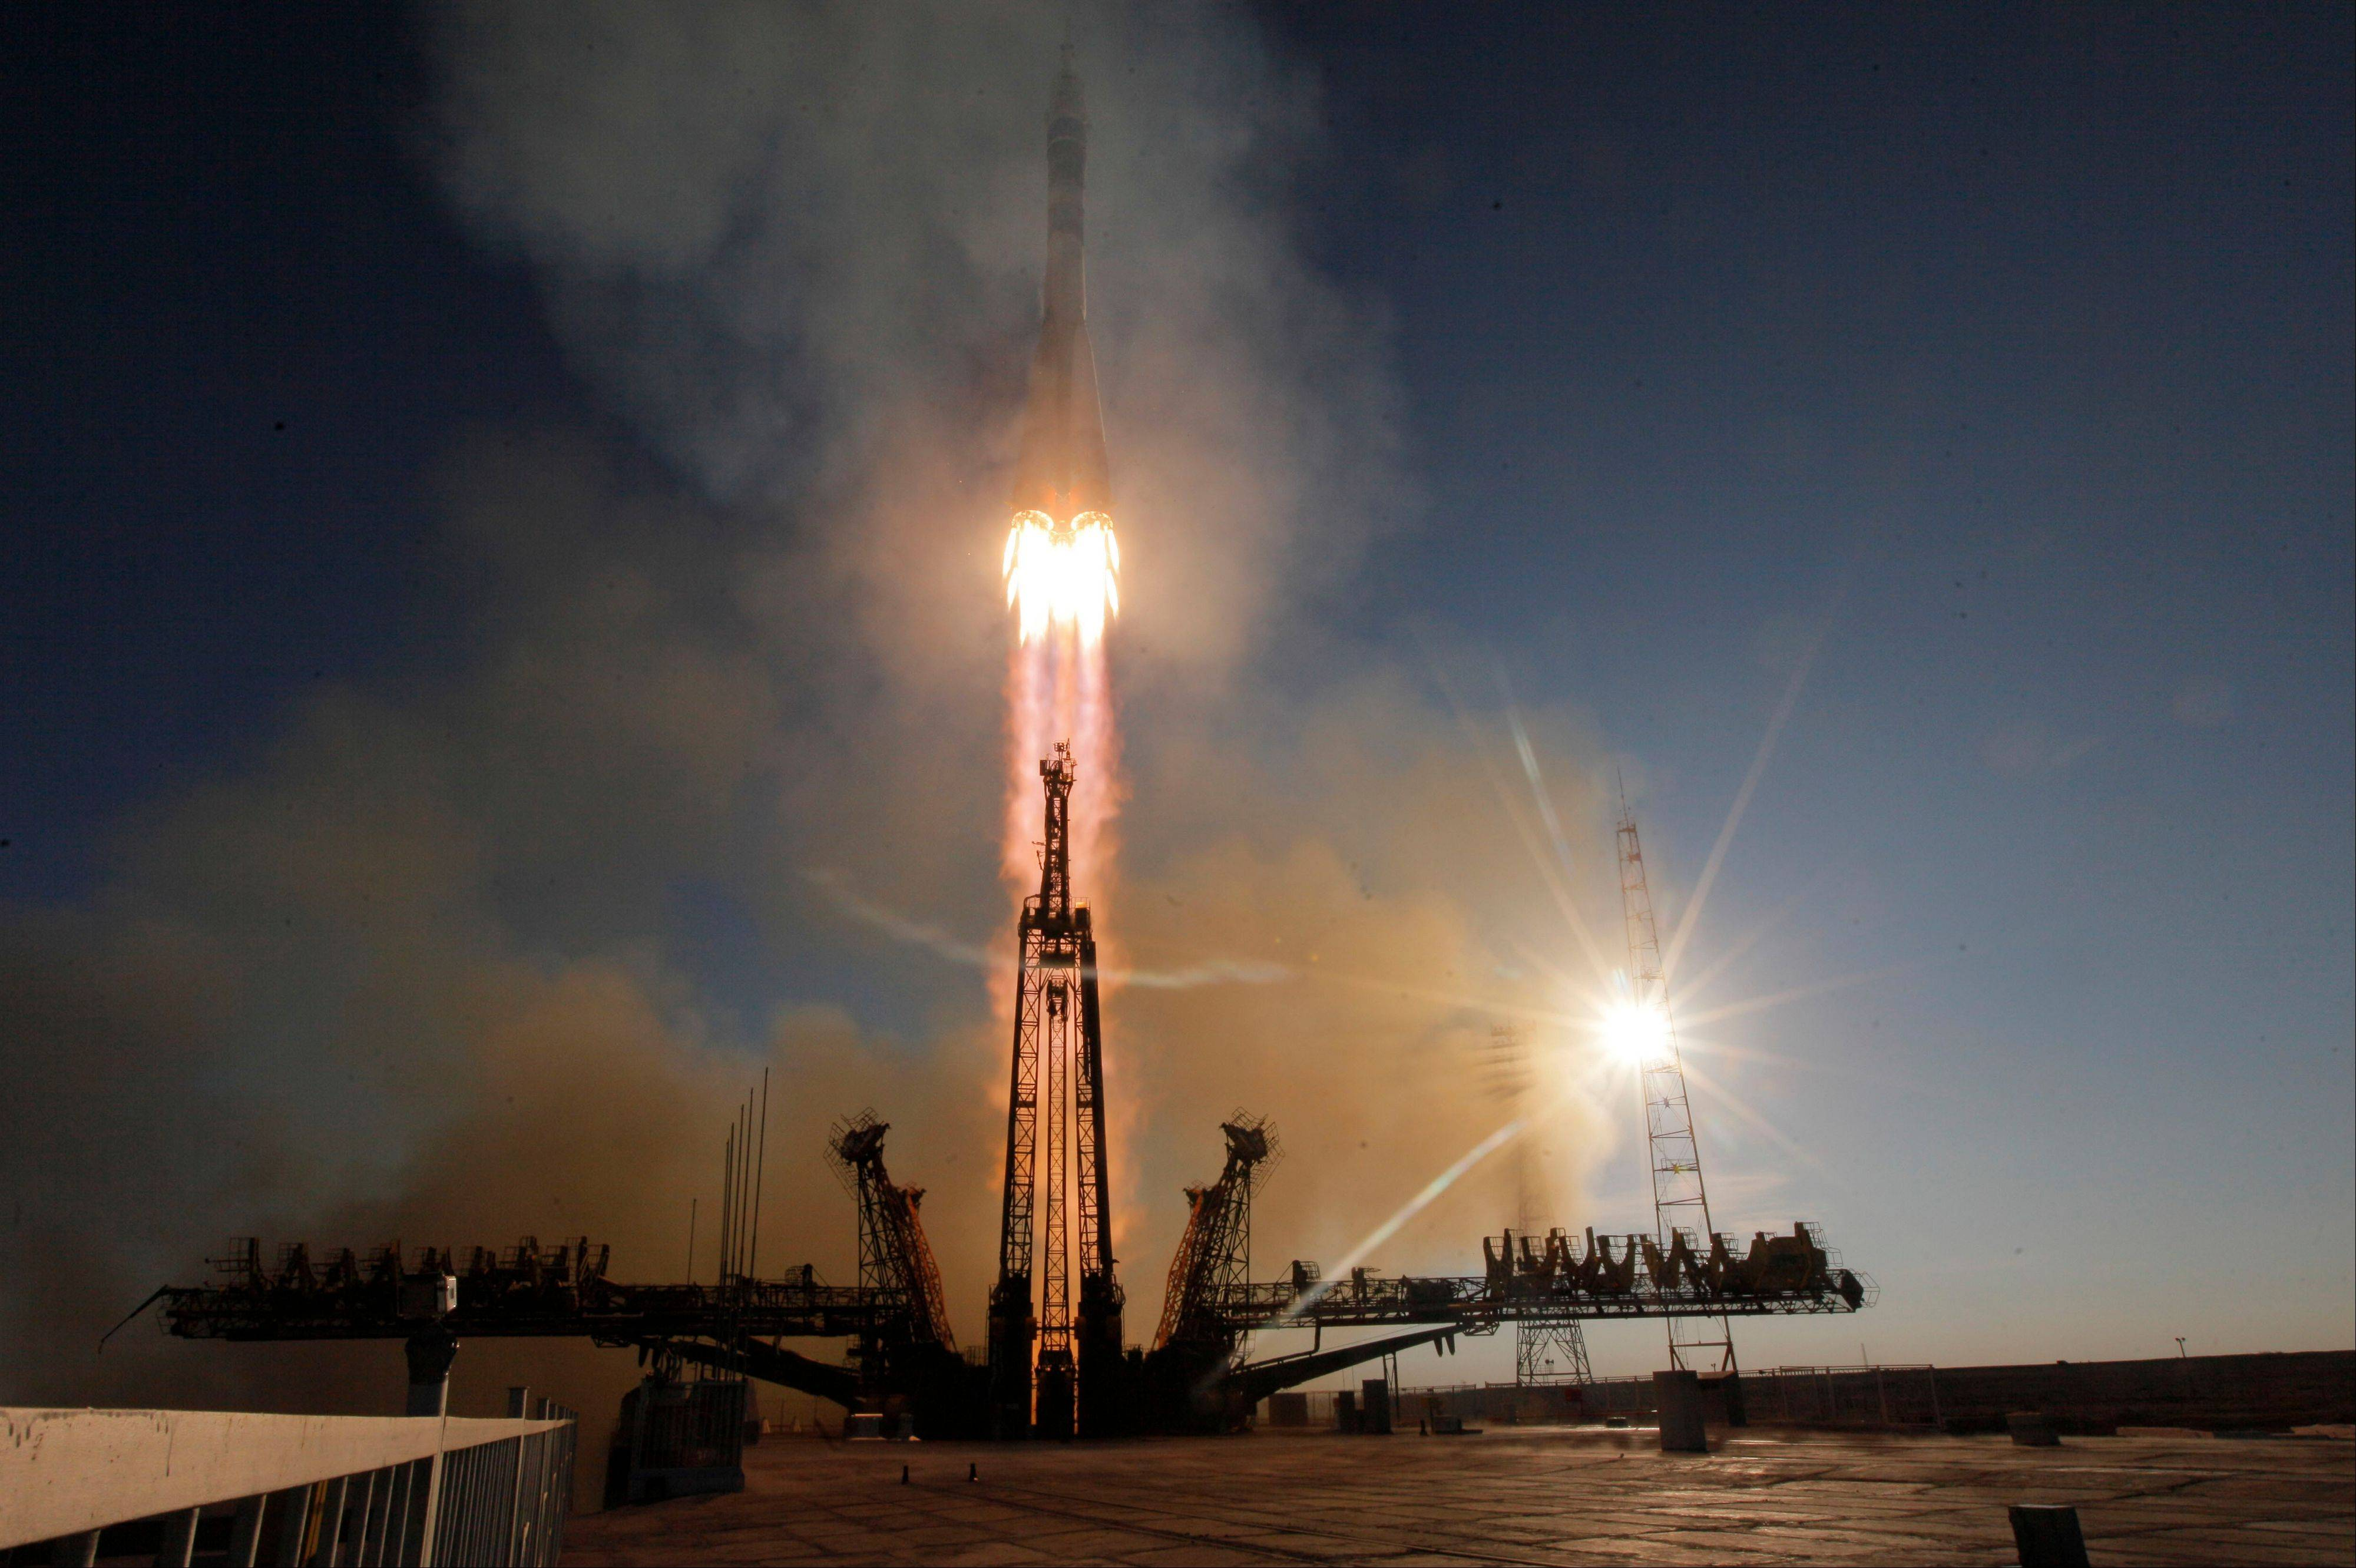 The Russian rocket carries Japanese astronaut Koichi Wakata, Russian cosmonaut Mikhail Tyurin and U.S. astronaut Rick Mastracchio who will deliver an Olympic torch to space as part of the ongoing Olympic torch relay. The torch will be brought back along with the station's current crew.